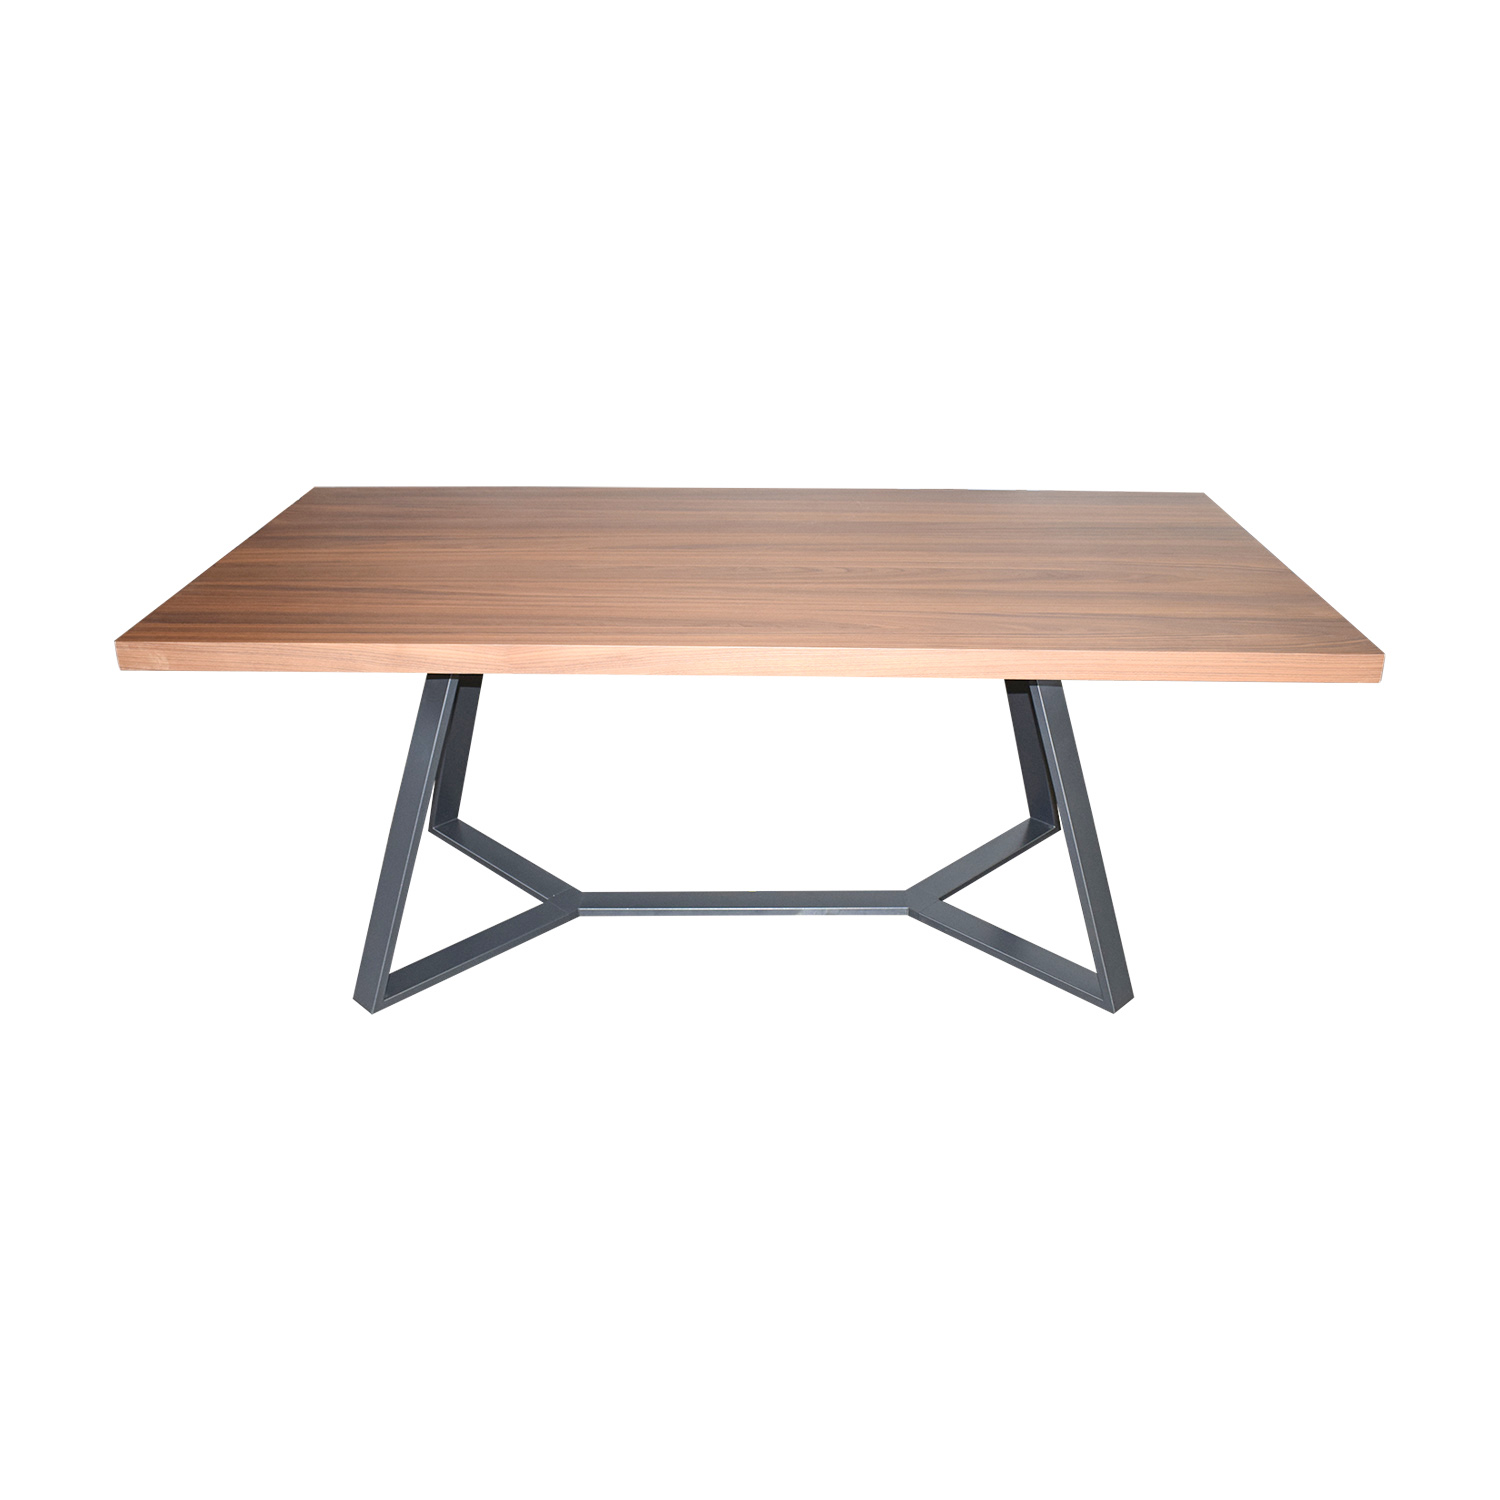 Domitalia Domitalia Archie L200 Walnut Dining Table dimensions